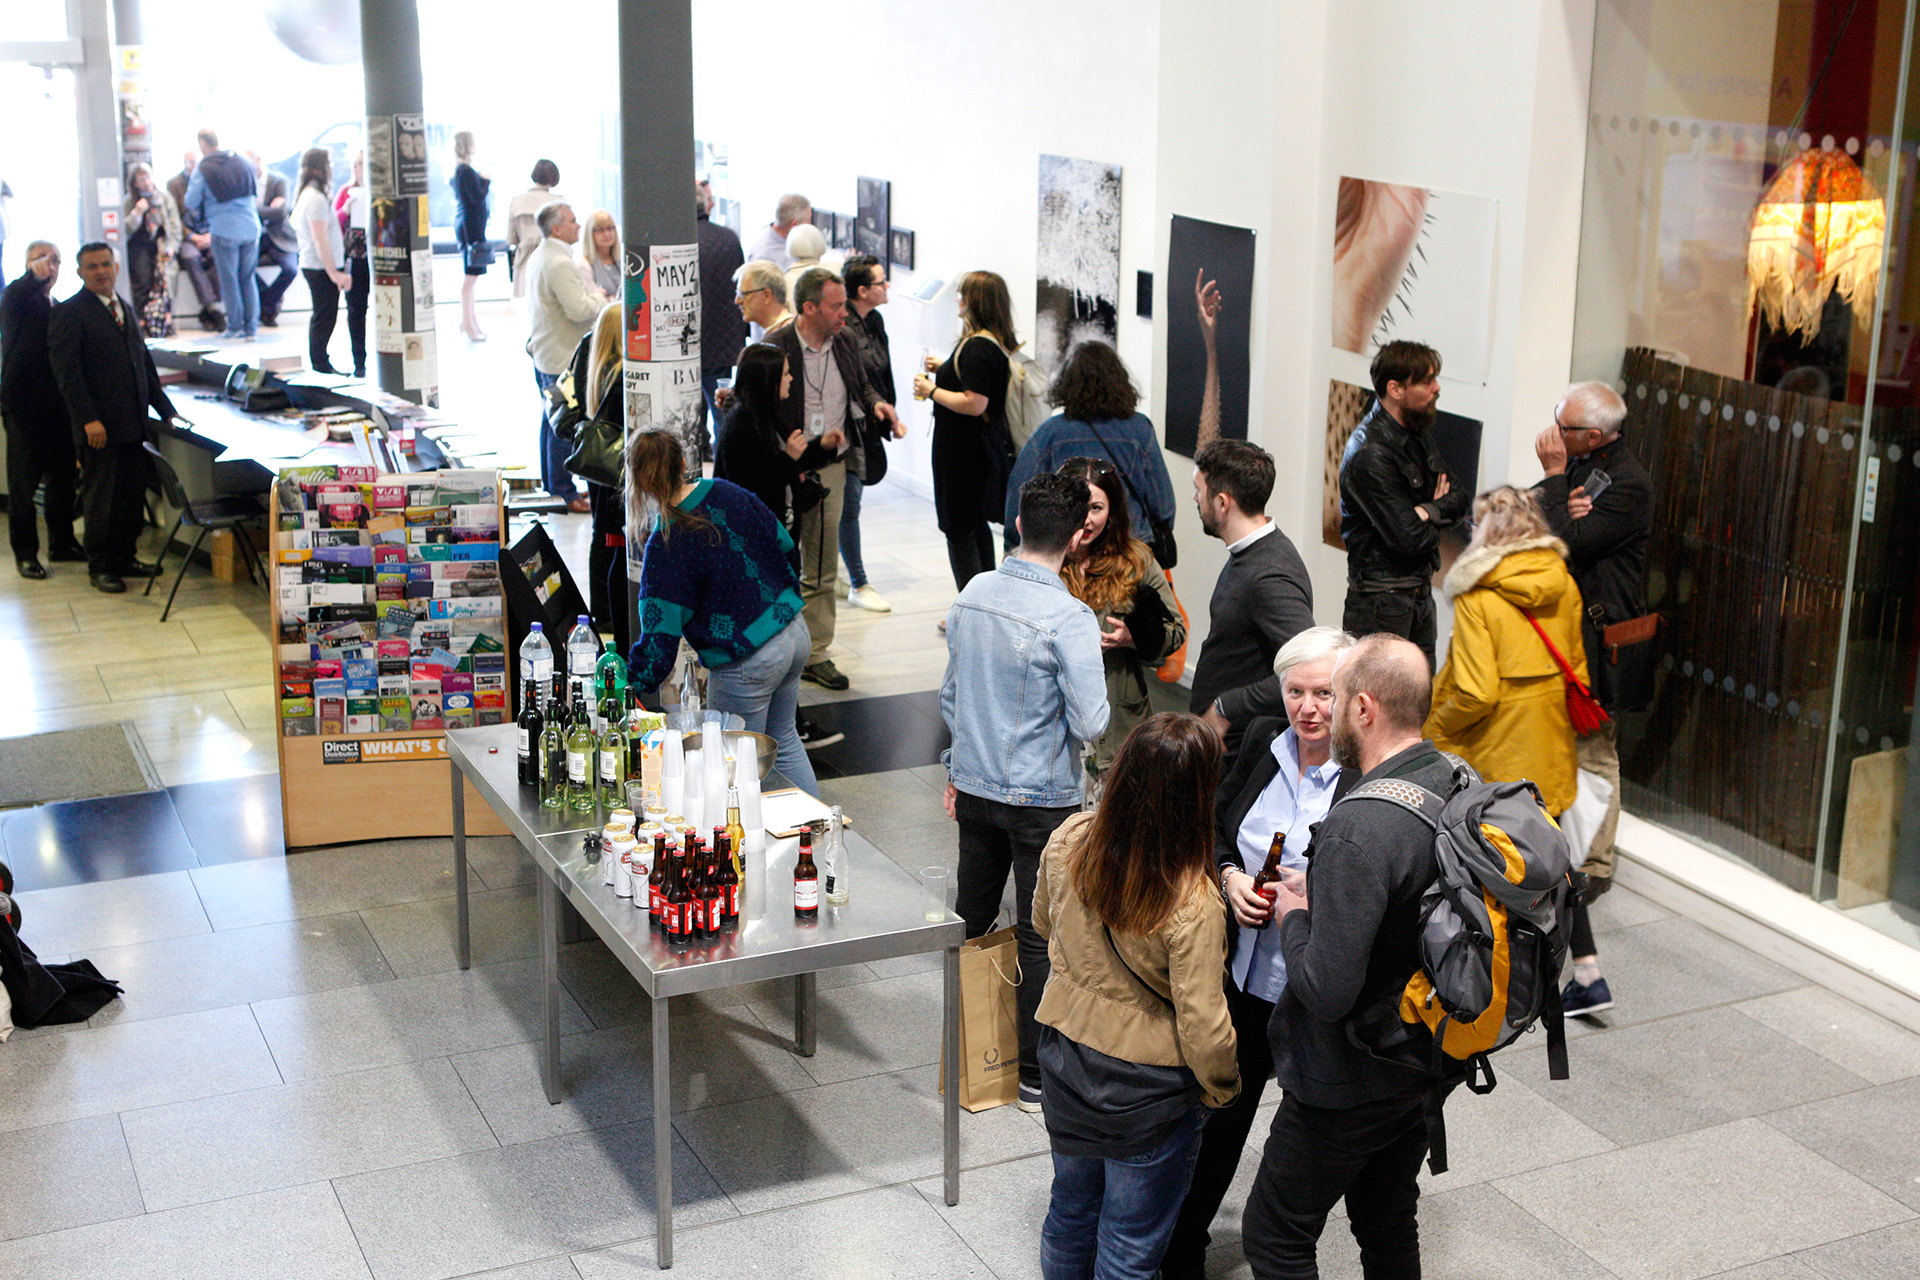 Opening Reception, Trongate 103, 4th May 2017